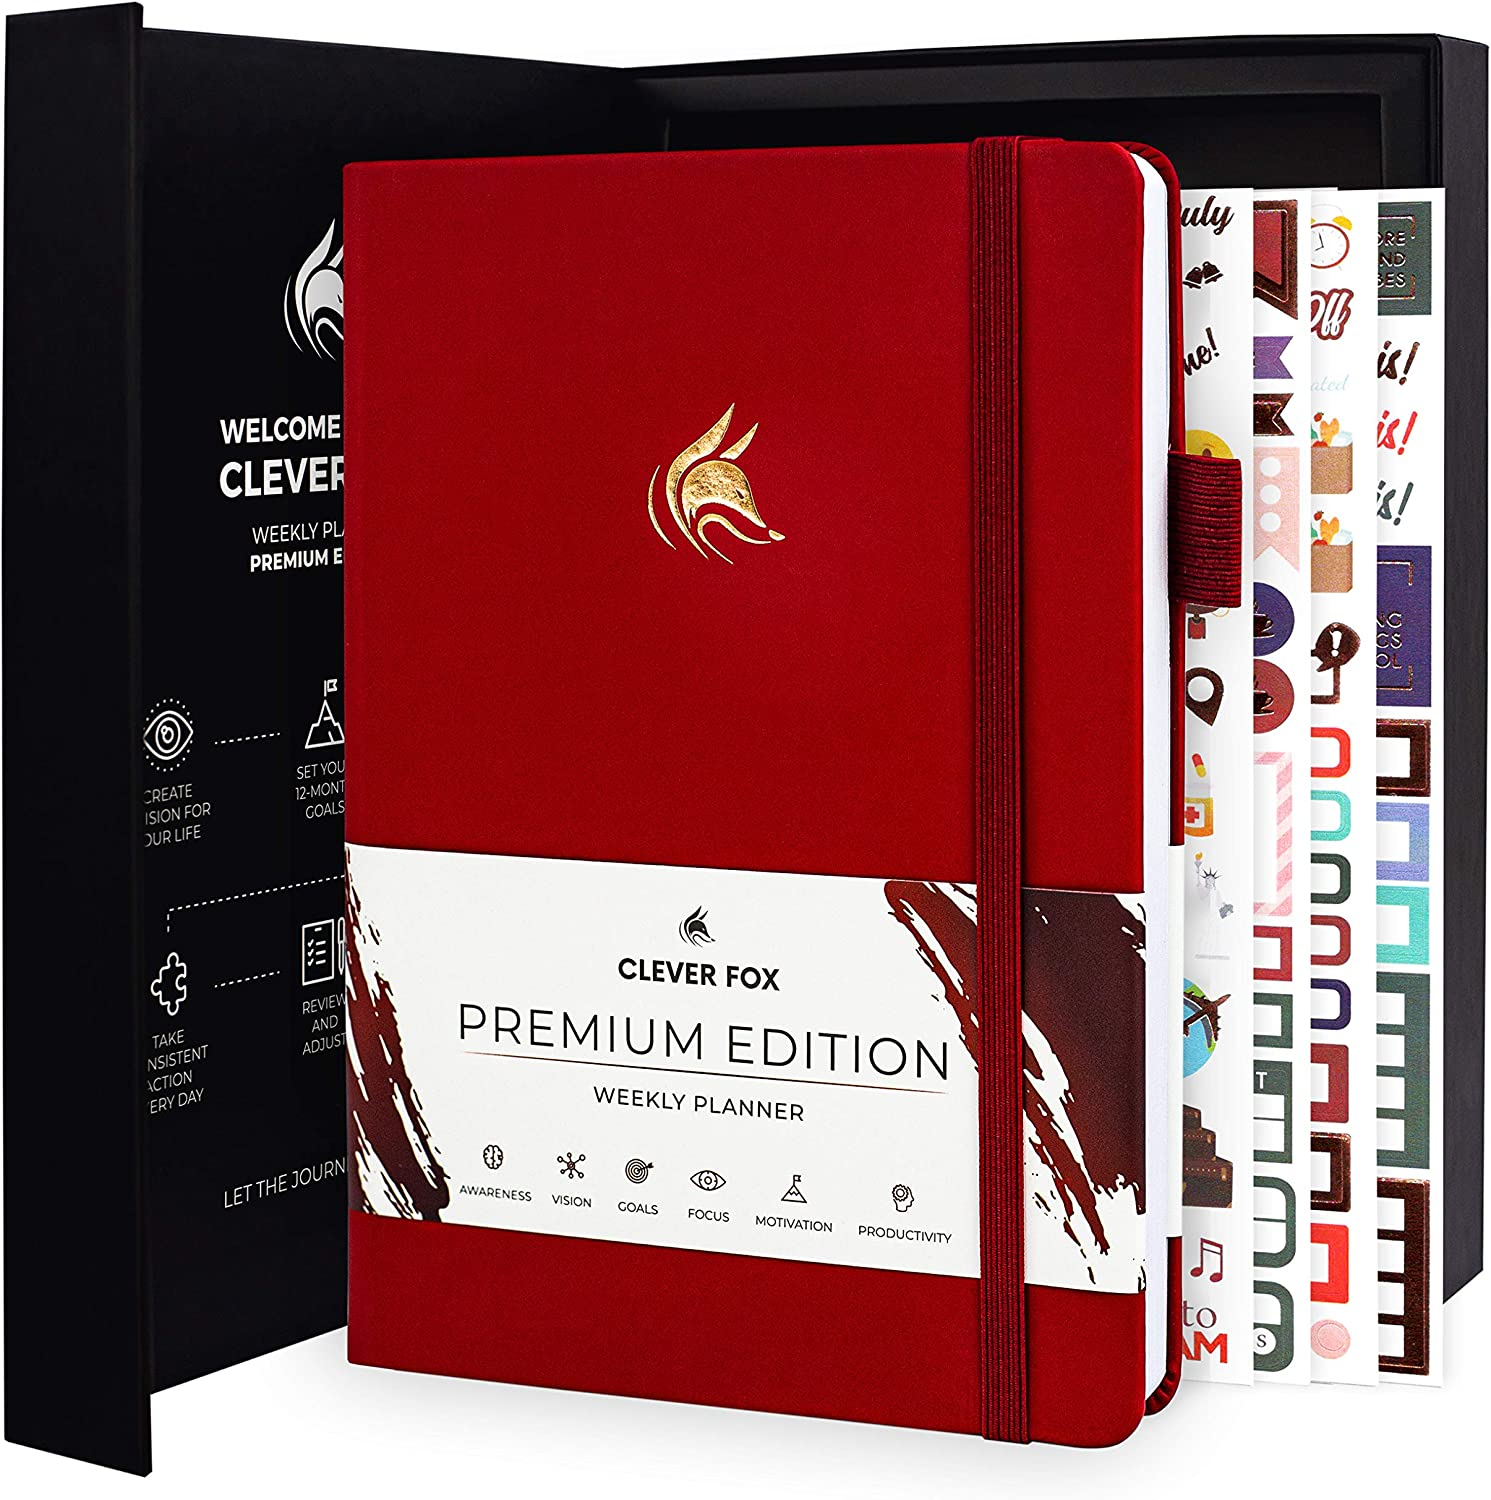 Clever Fox Planner Premium Edition - Luxurious Weekly & Monthly Planner to Increase Productivity and Hit Your Goals - Organizer - Undated, Start Anytime, A5, Lasts 1 Year, Wine Red (Weekly)